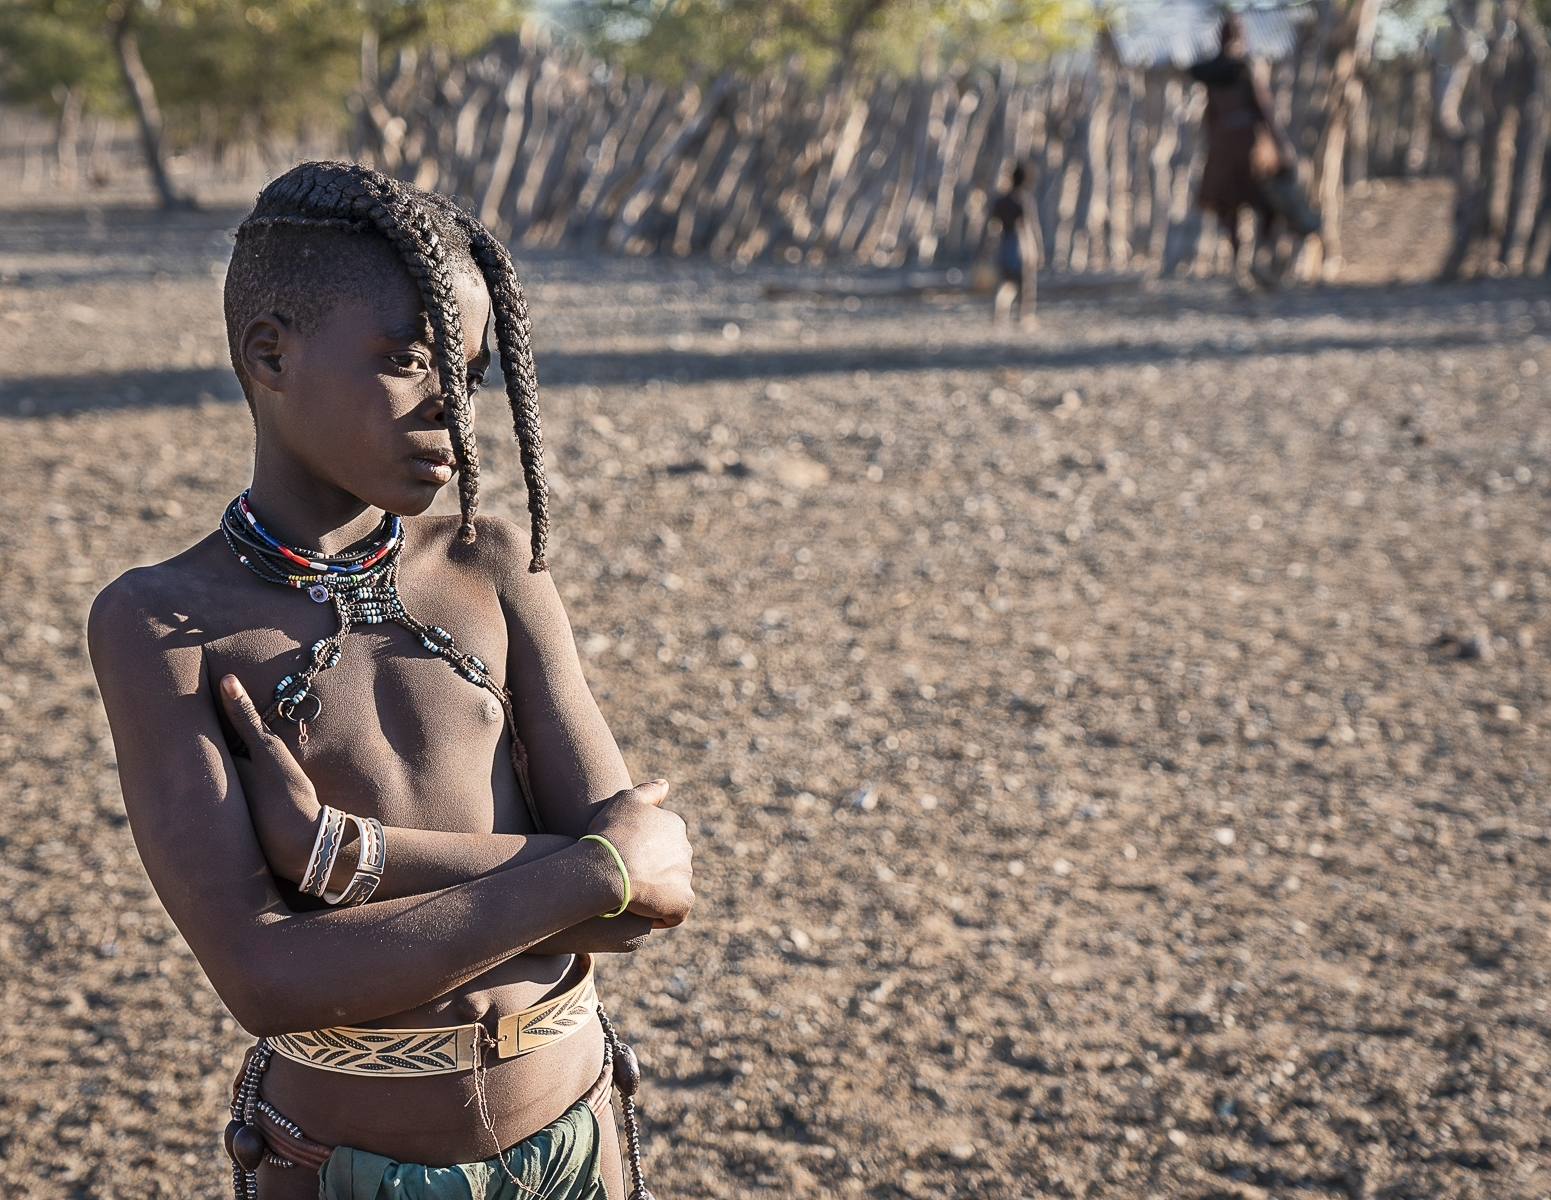 'Young Himba Girl with Traditional Prepubescent Hairstyle.' (TA Best in Show) by Dorothy Weaver - MR